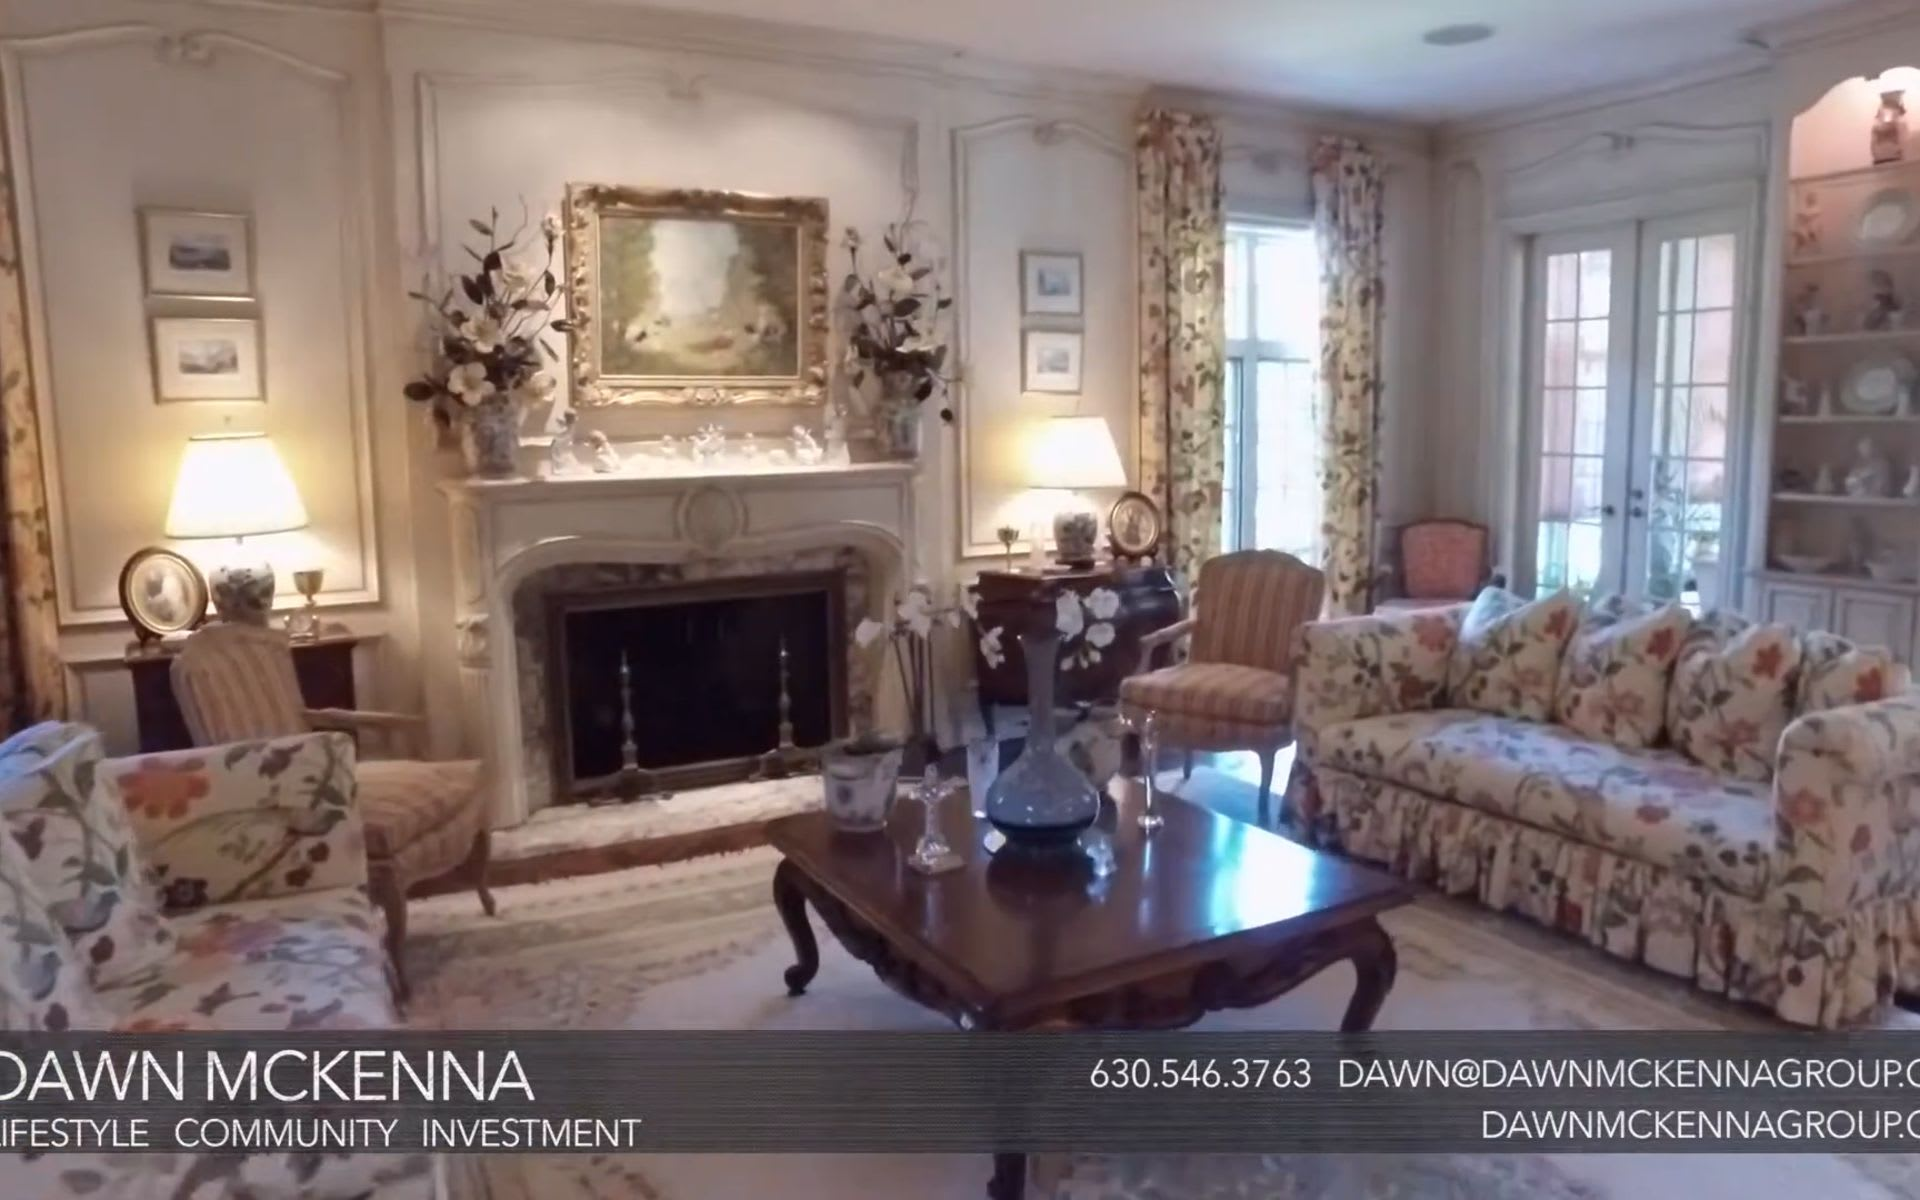 901 SOUTH PARK, HINSDALE, IL DAWN MCKENNA GROUP video preview